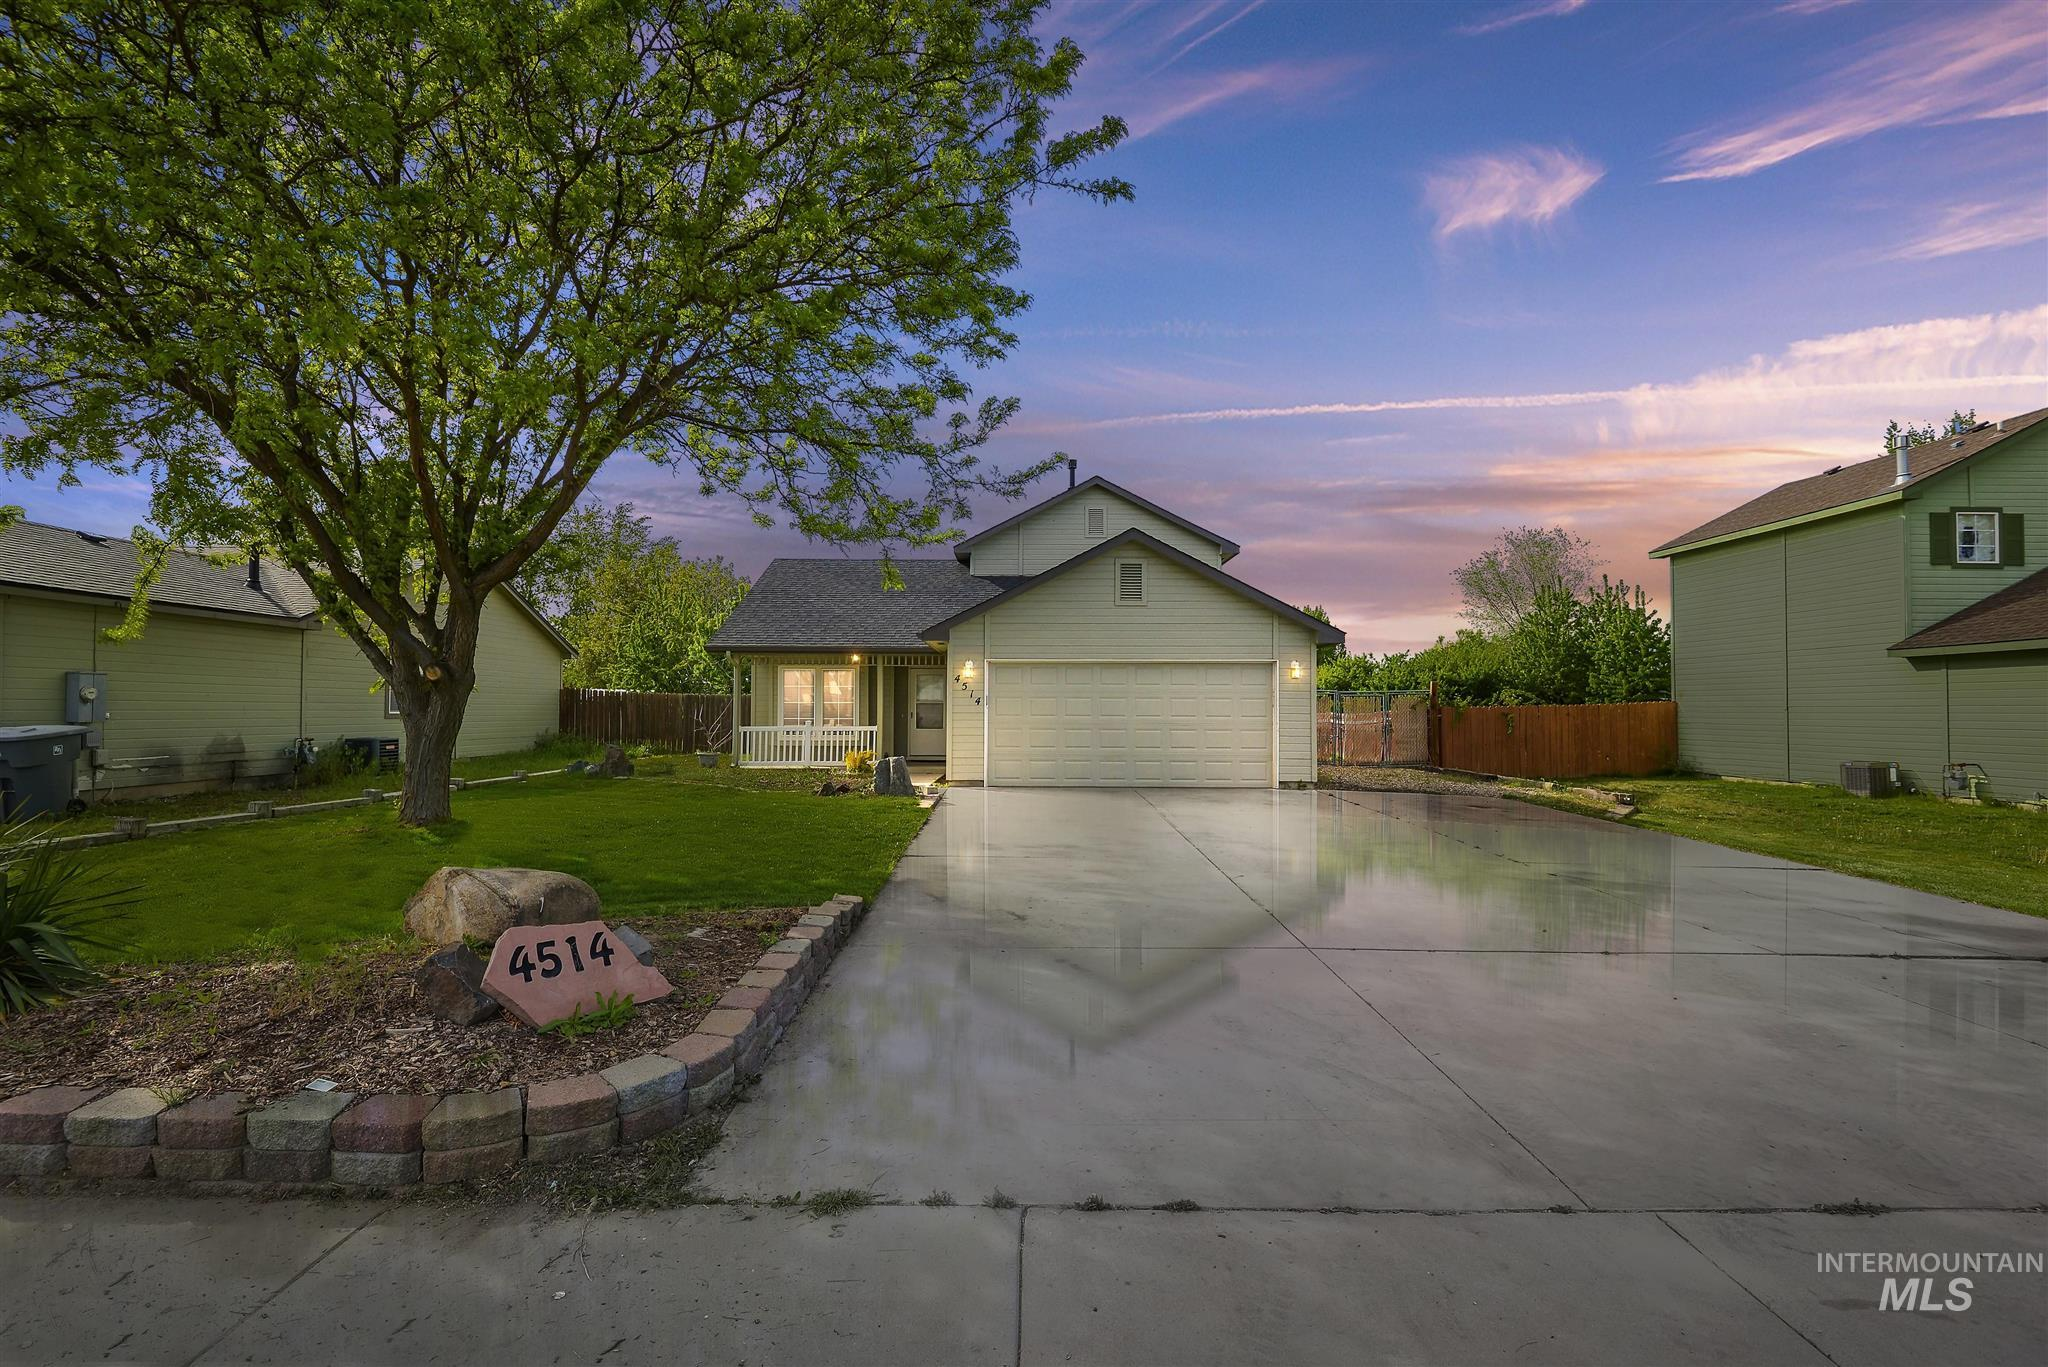 4514 Arroyo Way Property Photo - Caldwell, ID real estate listing